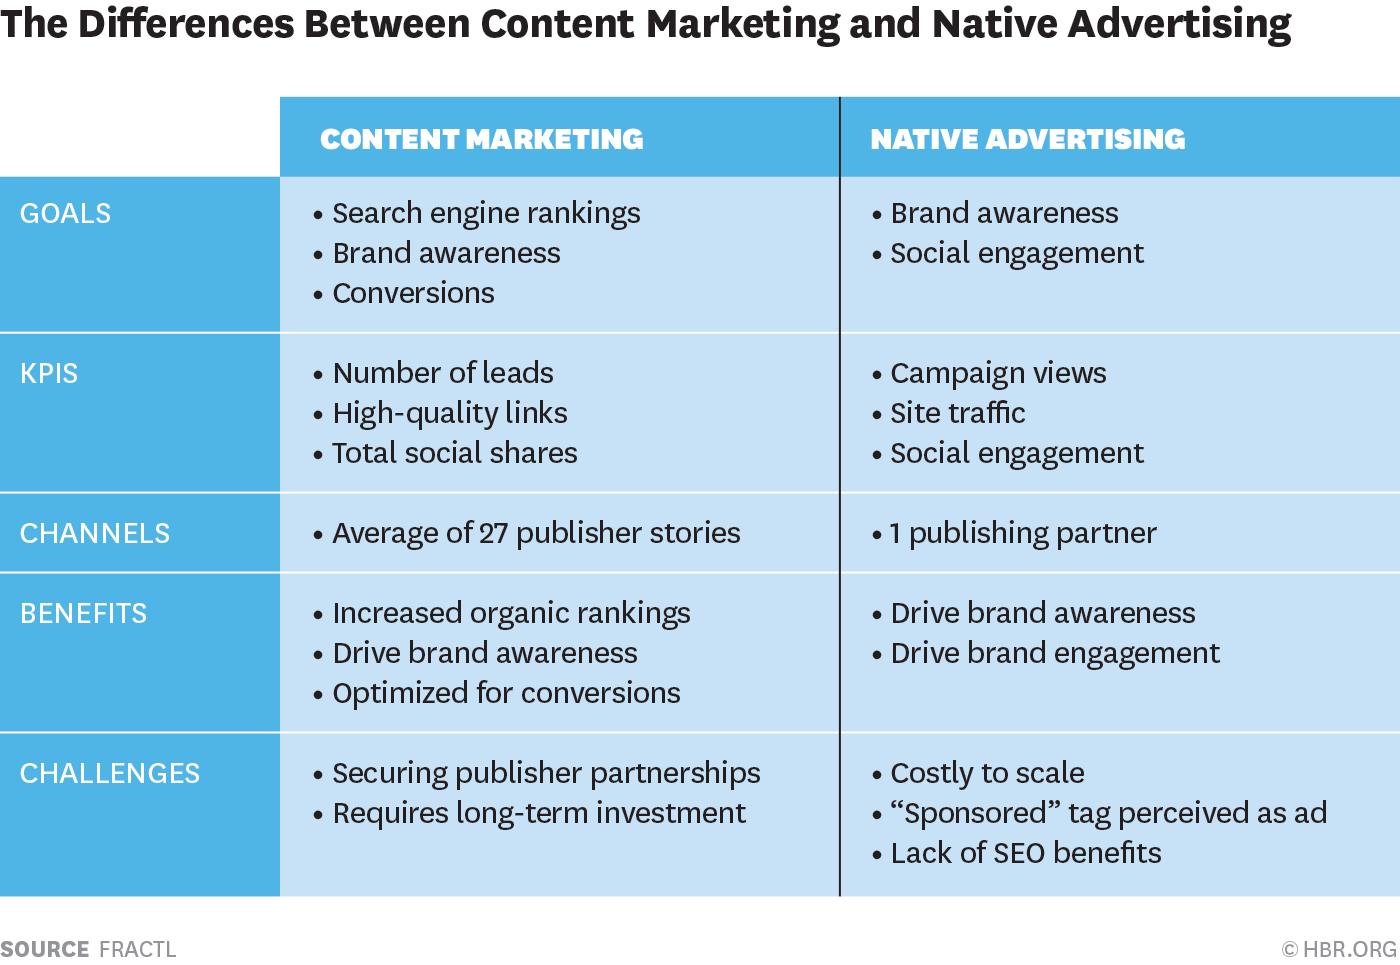 Content Marketing vs Native Advertising - Which Produces Better Results? | Social Media Today